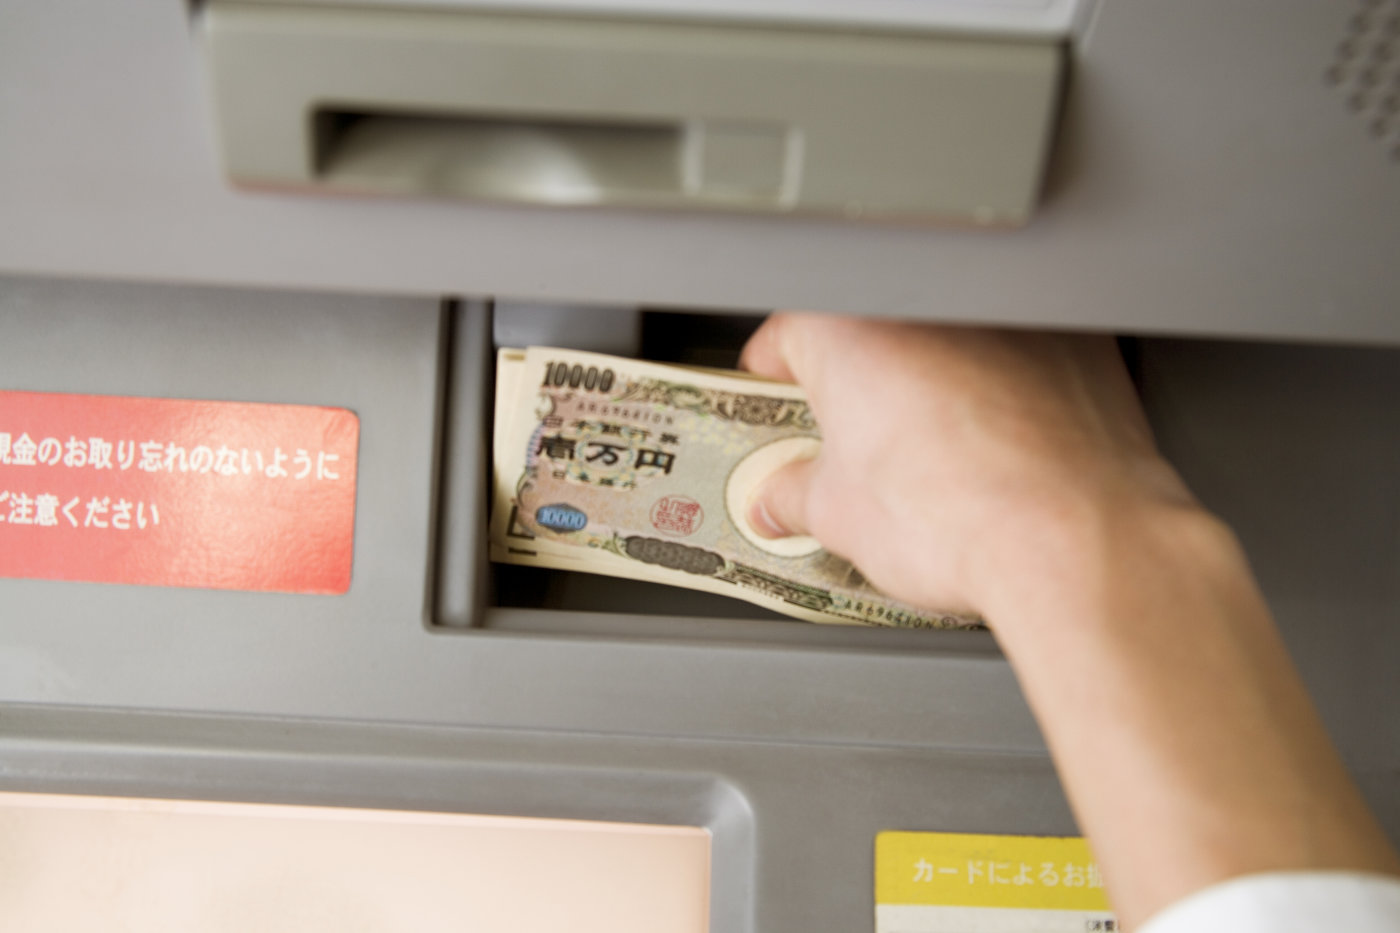 An Immense, Coordinated ATM Heist In Japan Nets 1